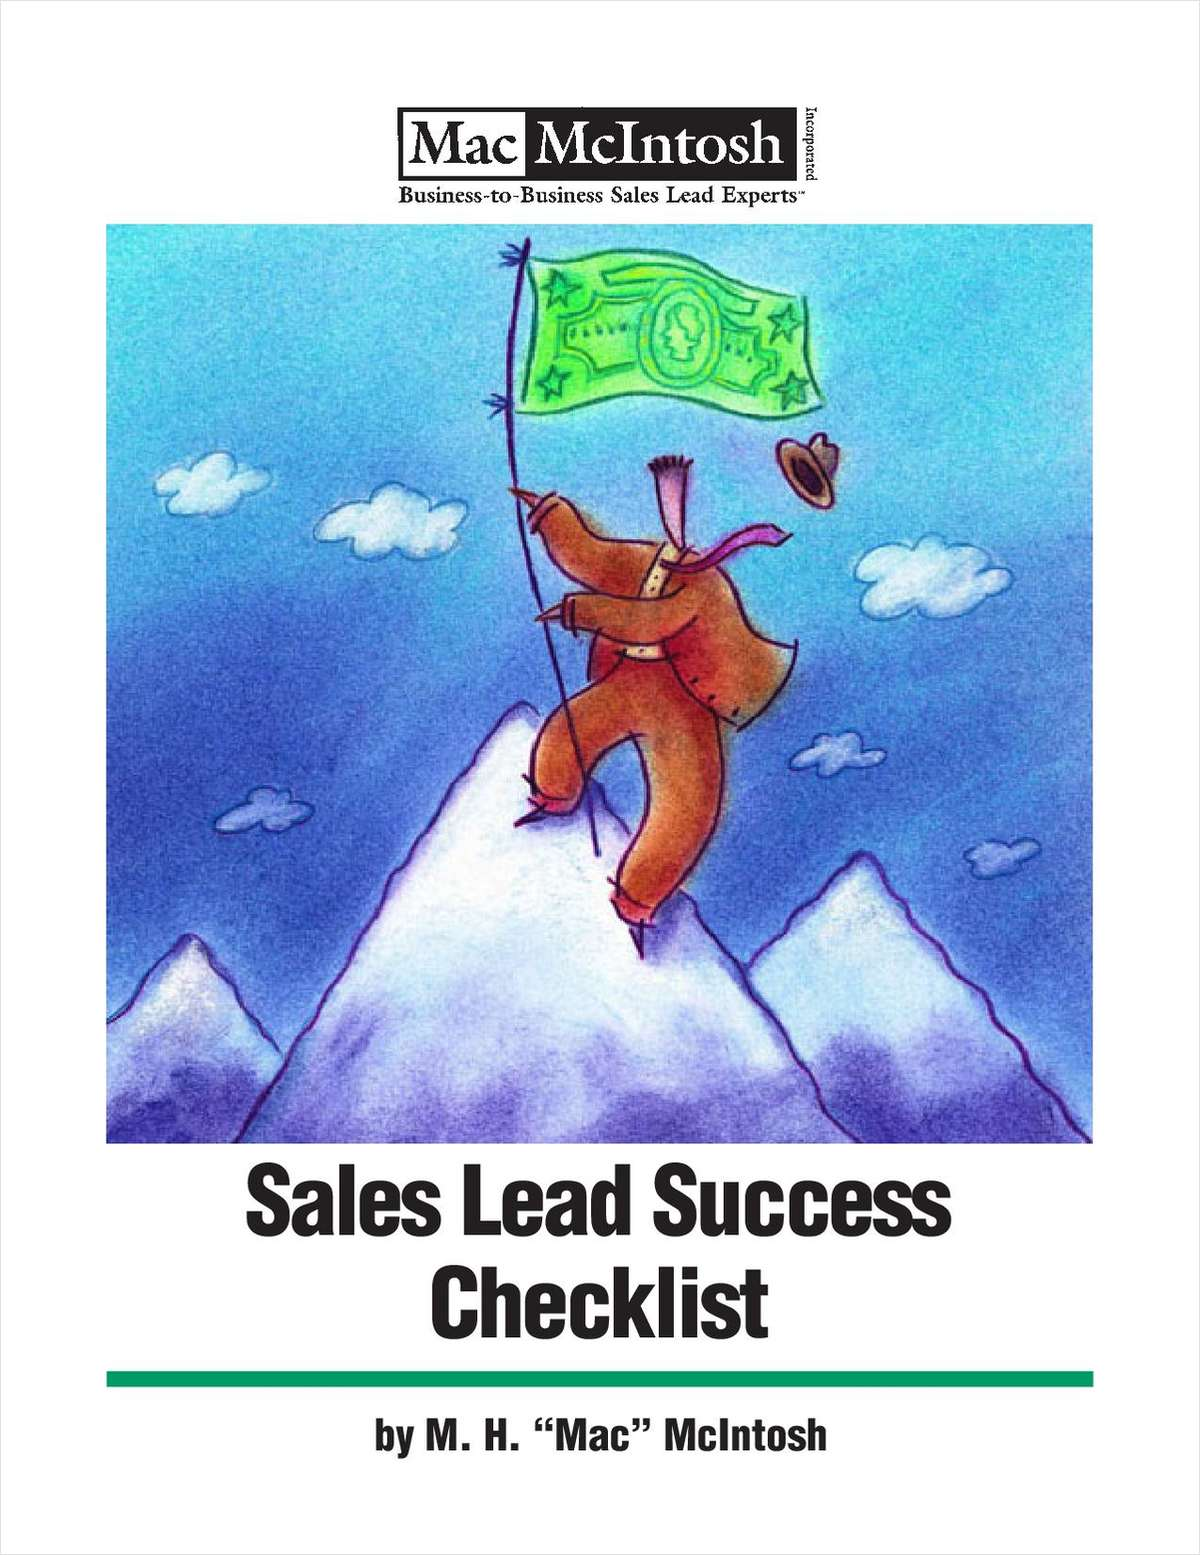 B2B Sales Lead Success Checklist